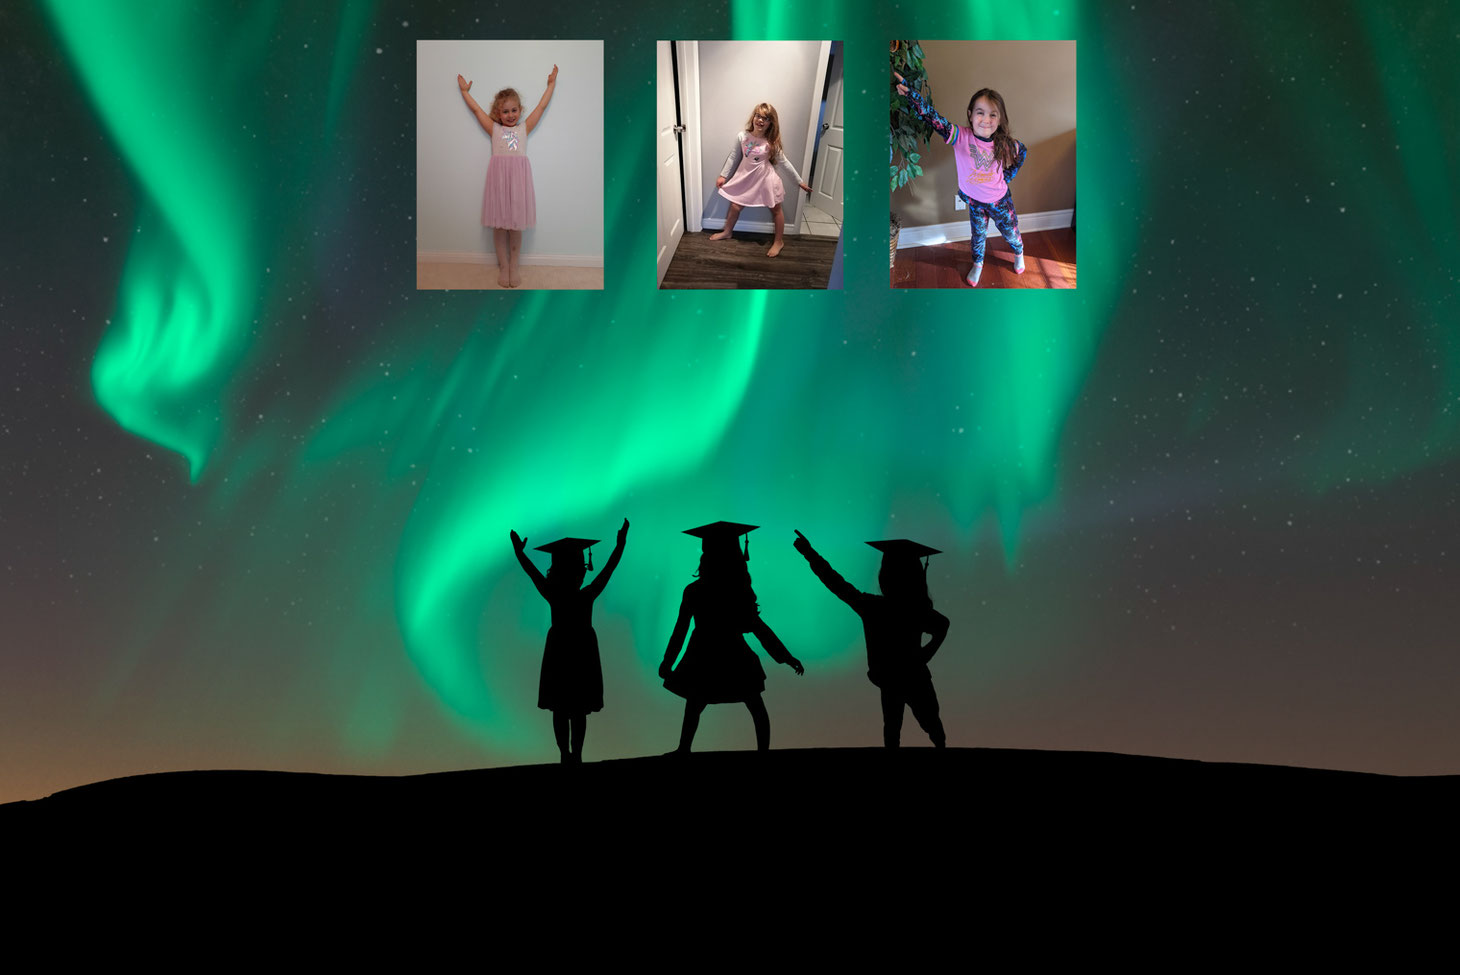 silhouettes of 3 girls with grad caps in front of a sky with the northern lights.